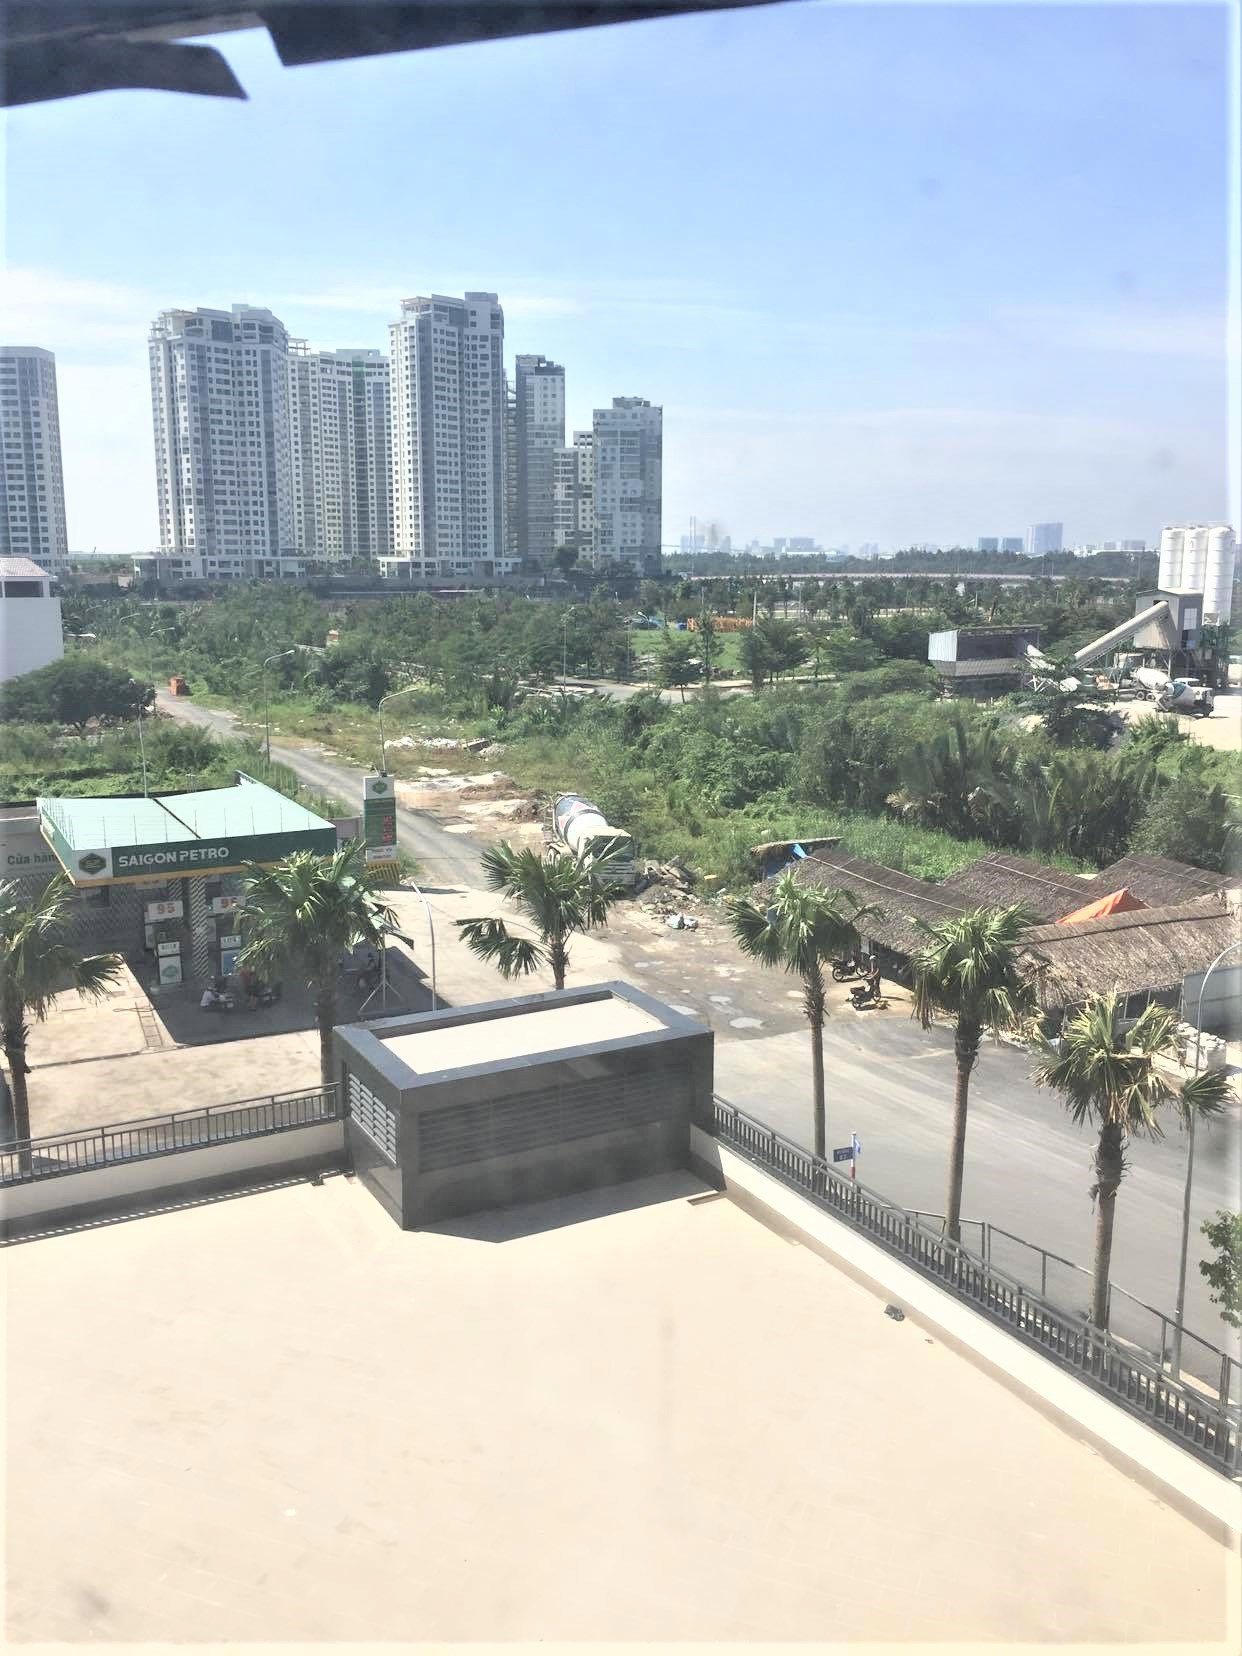 D227172 - APARTMENT FOR RENT - THE SUN AVENUE - 1 bedroom